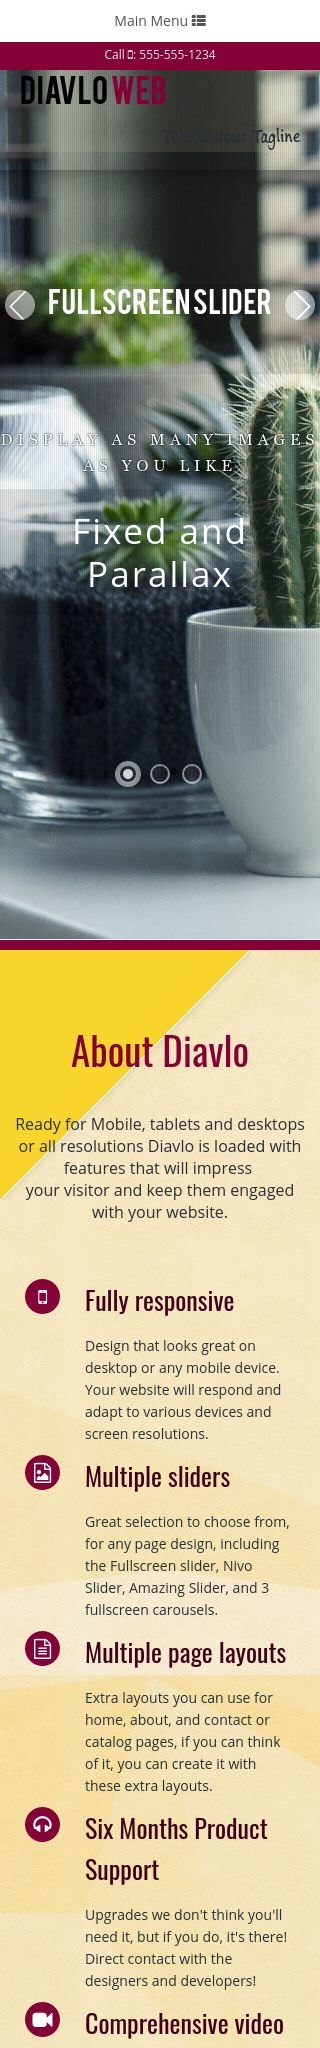 Mobile: Interior-design Dreamweaver Template